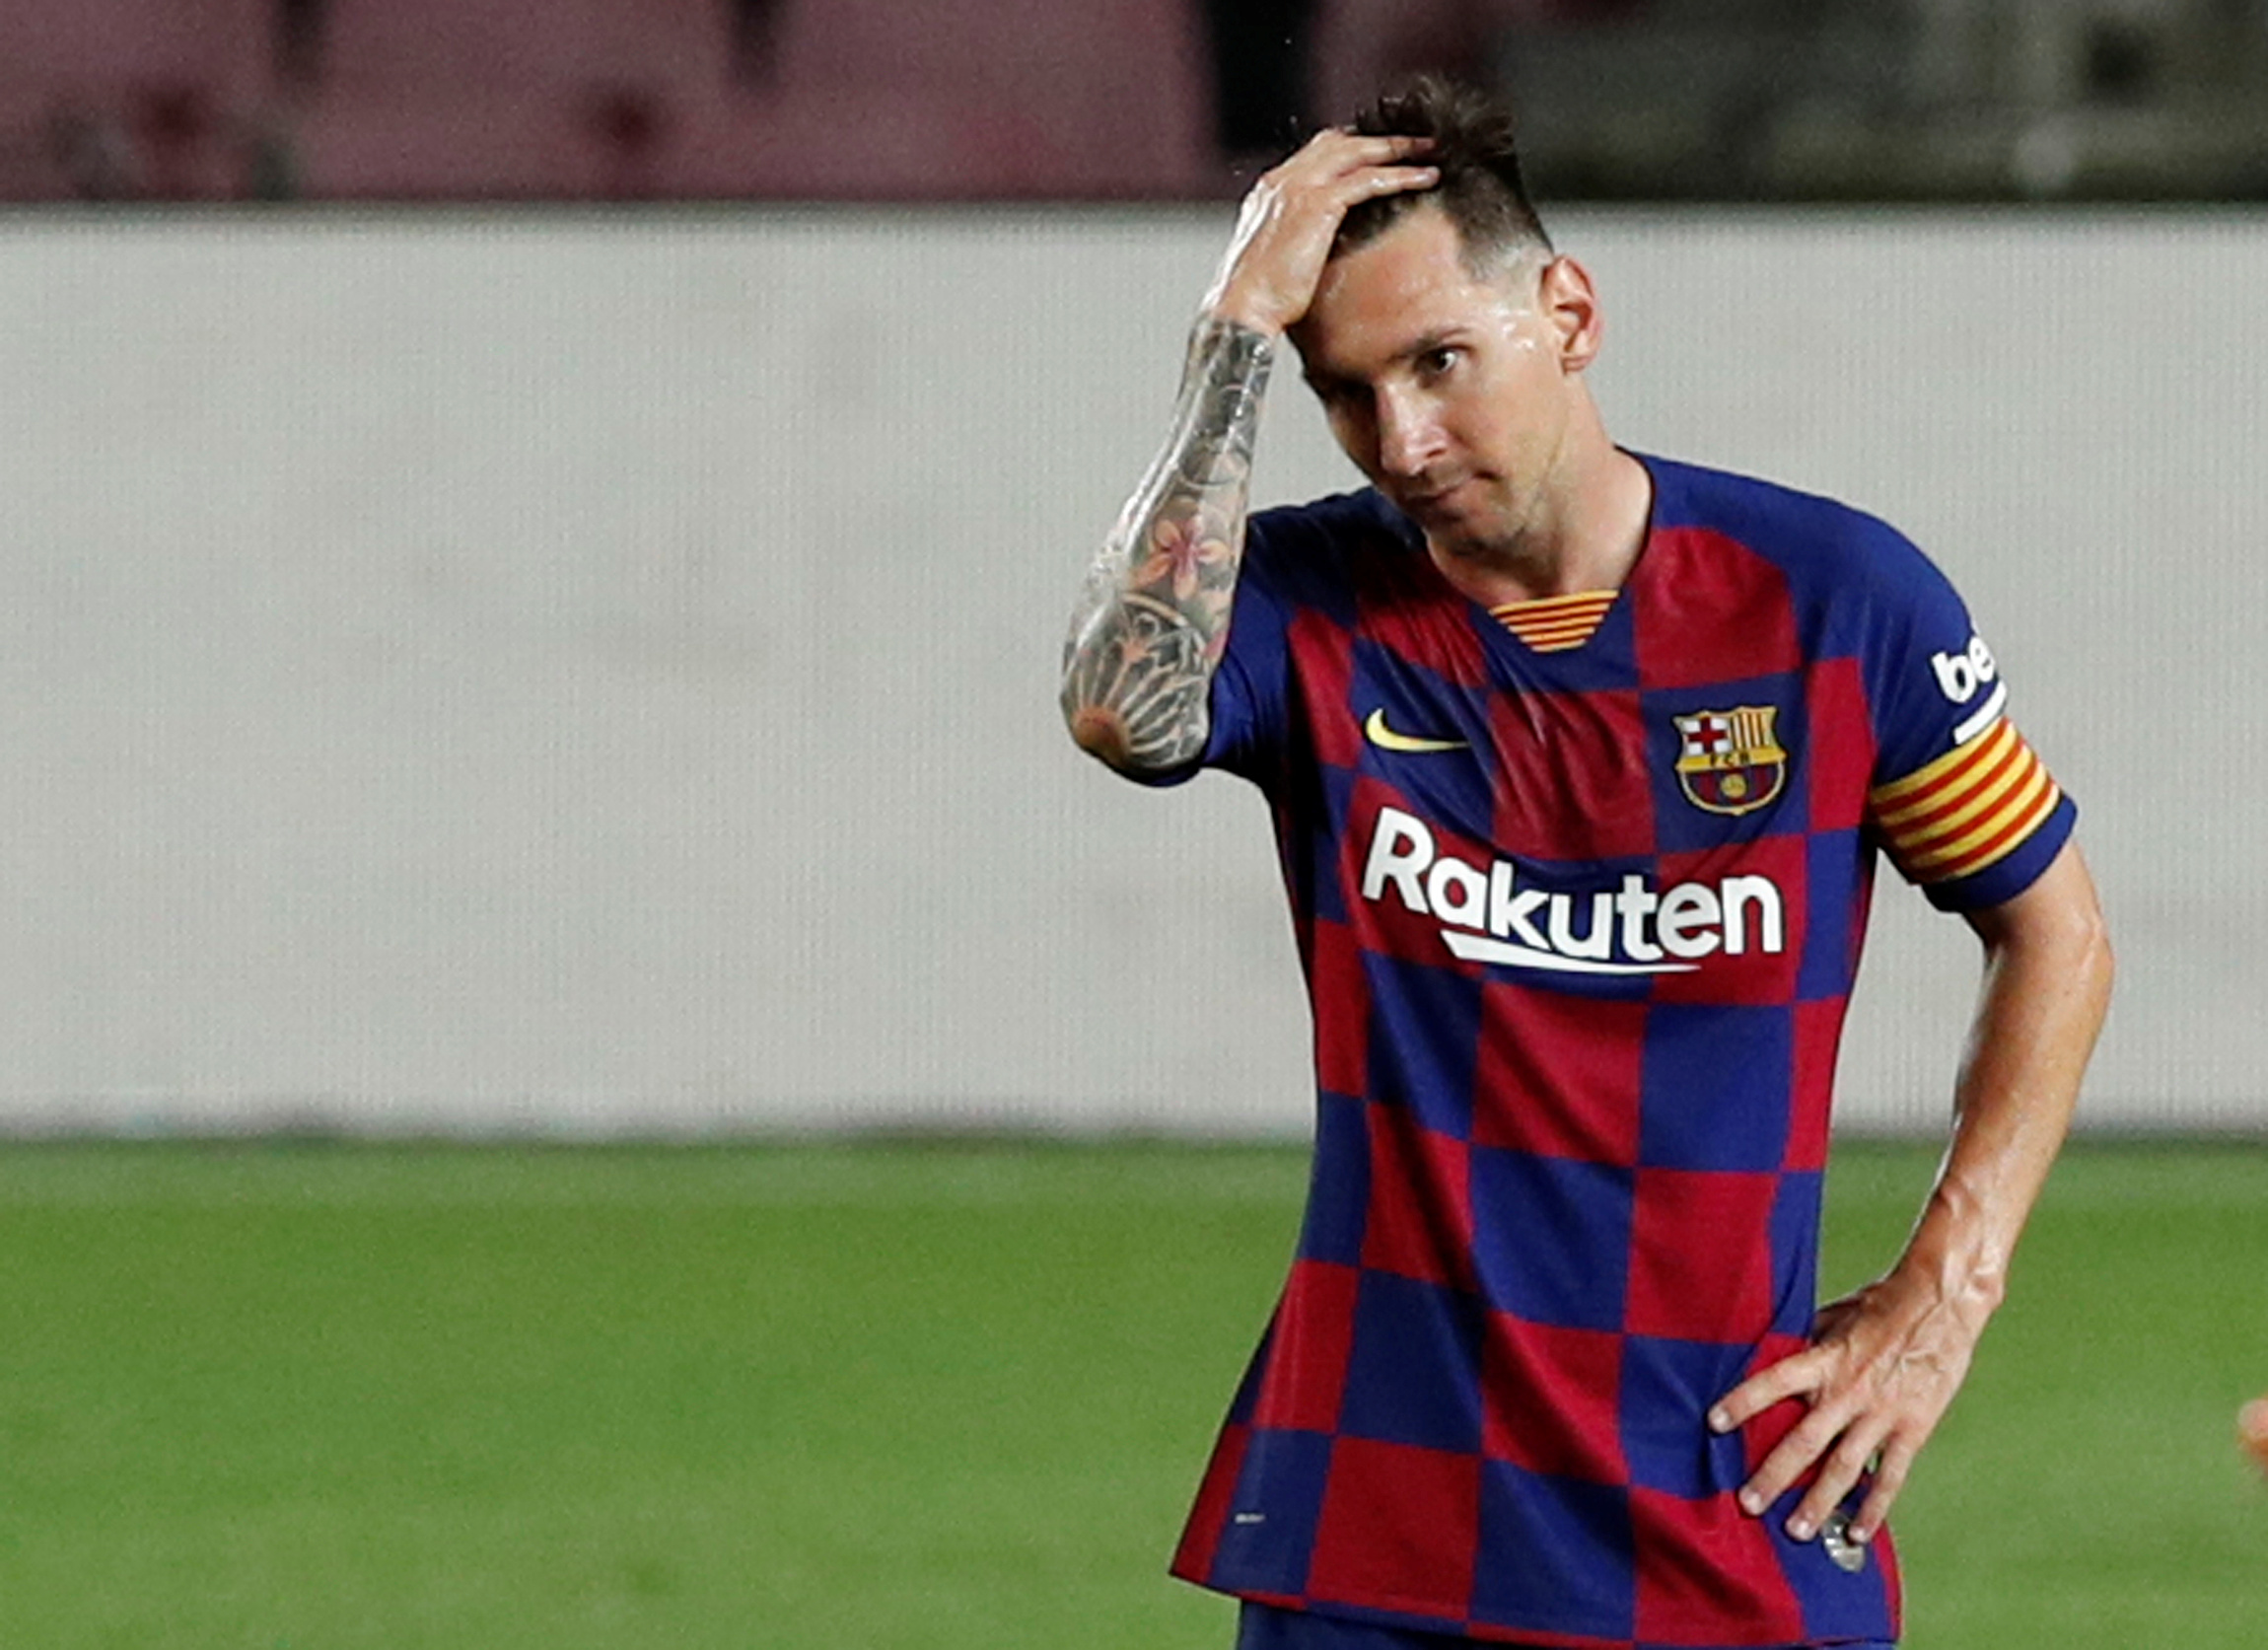 Barcelona's Lionel Messi reacts, as play resumes behind closed doors following the outbreak of the coronavirus disease (COVID-19) during the La Liga Santander match between FC Barcelona and Atletico Madrid, at Camp Nou, in Barcelona, Spain, on June 30, 2020. Photo: Reuters